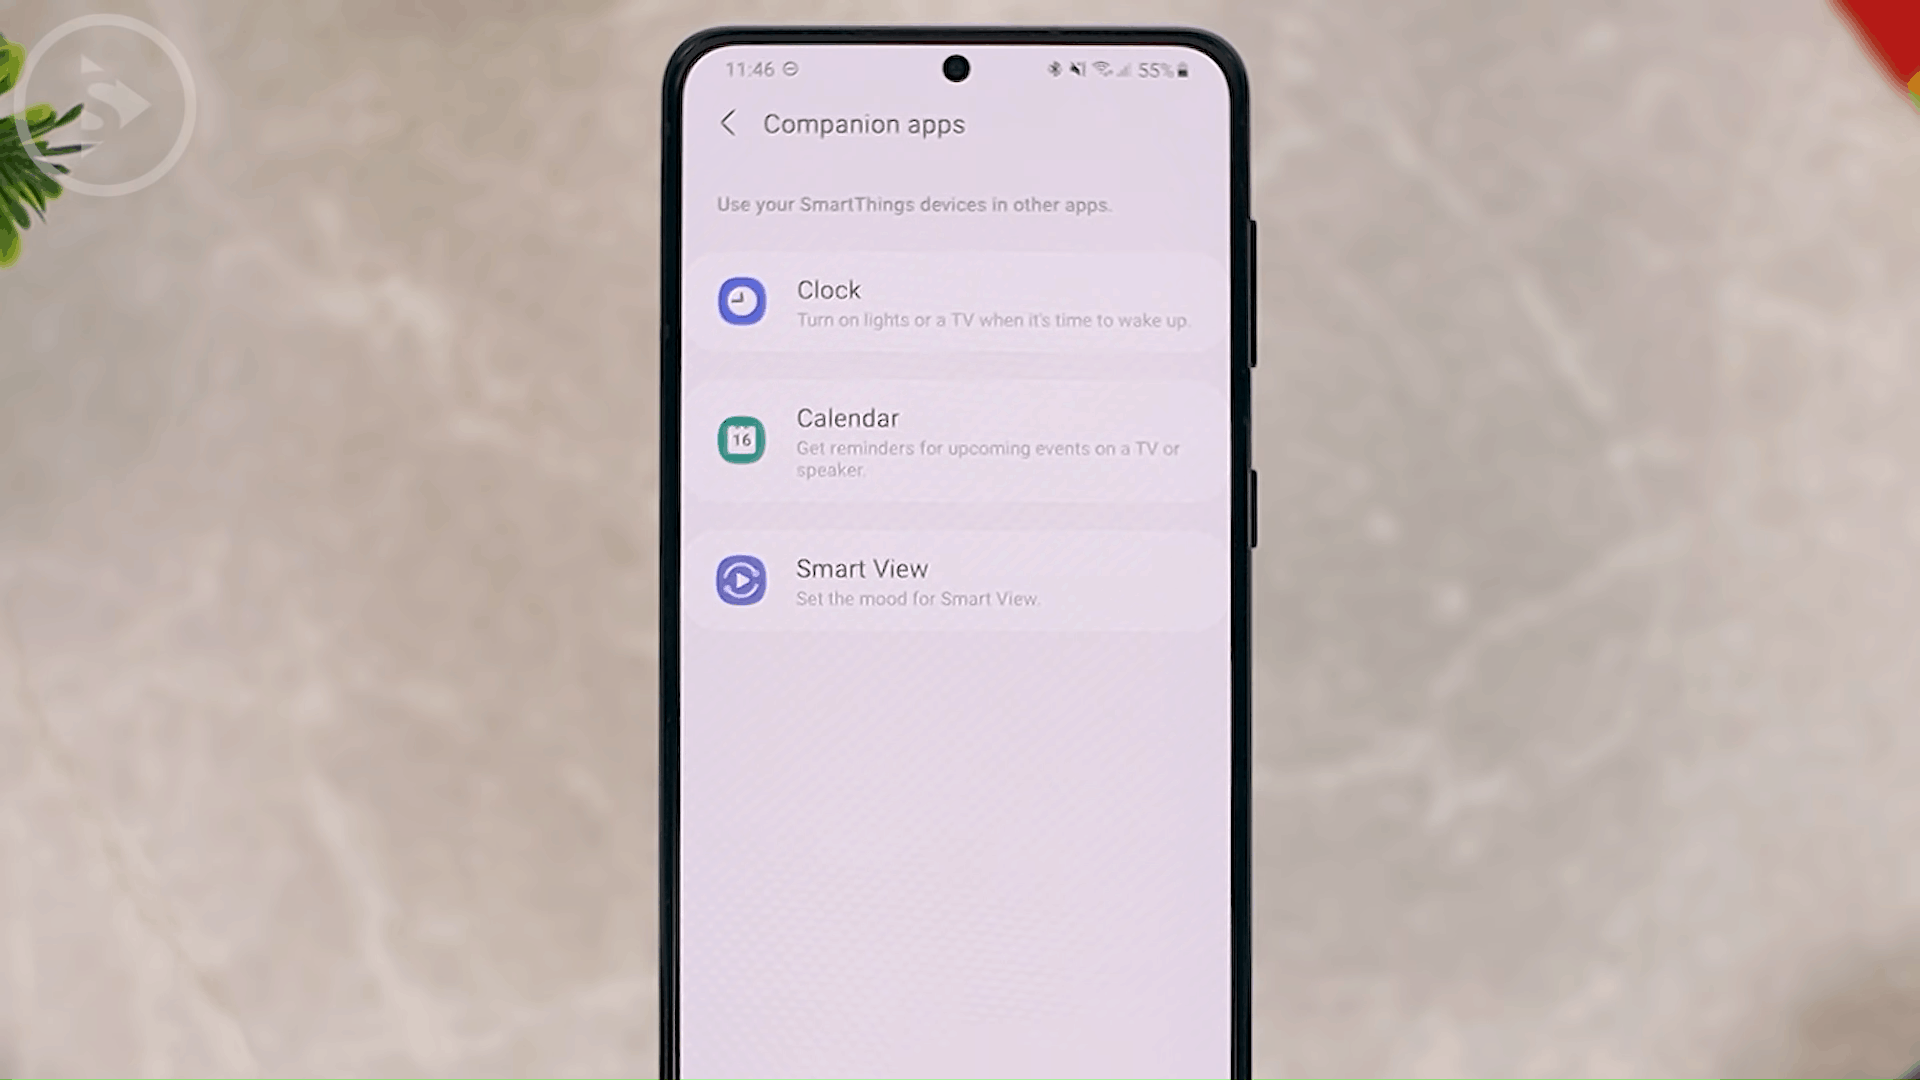 Companion Apps on SmartThings - 8 New and Cool Samsung Features in One UI 3.0 and One UI 3.1